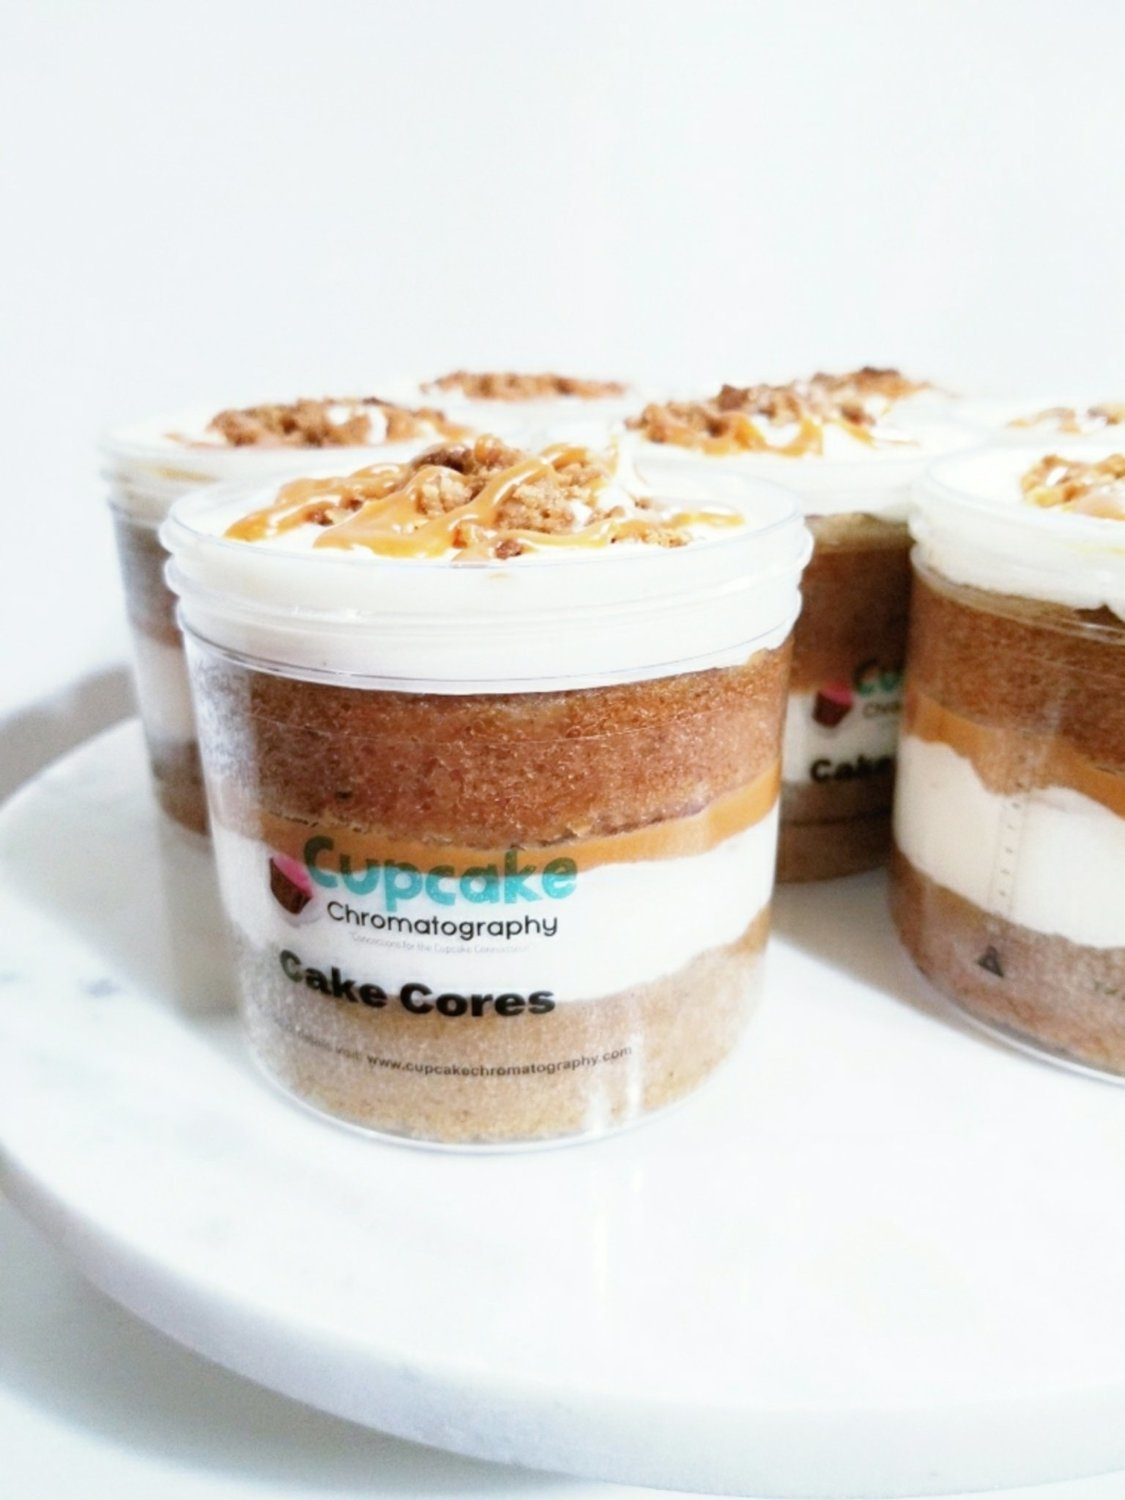 5 Pack Cake Cores *SPECIAL Bundle*